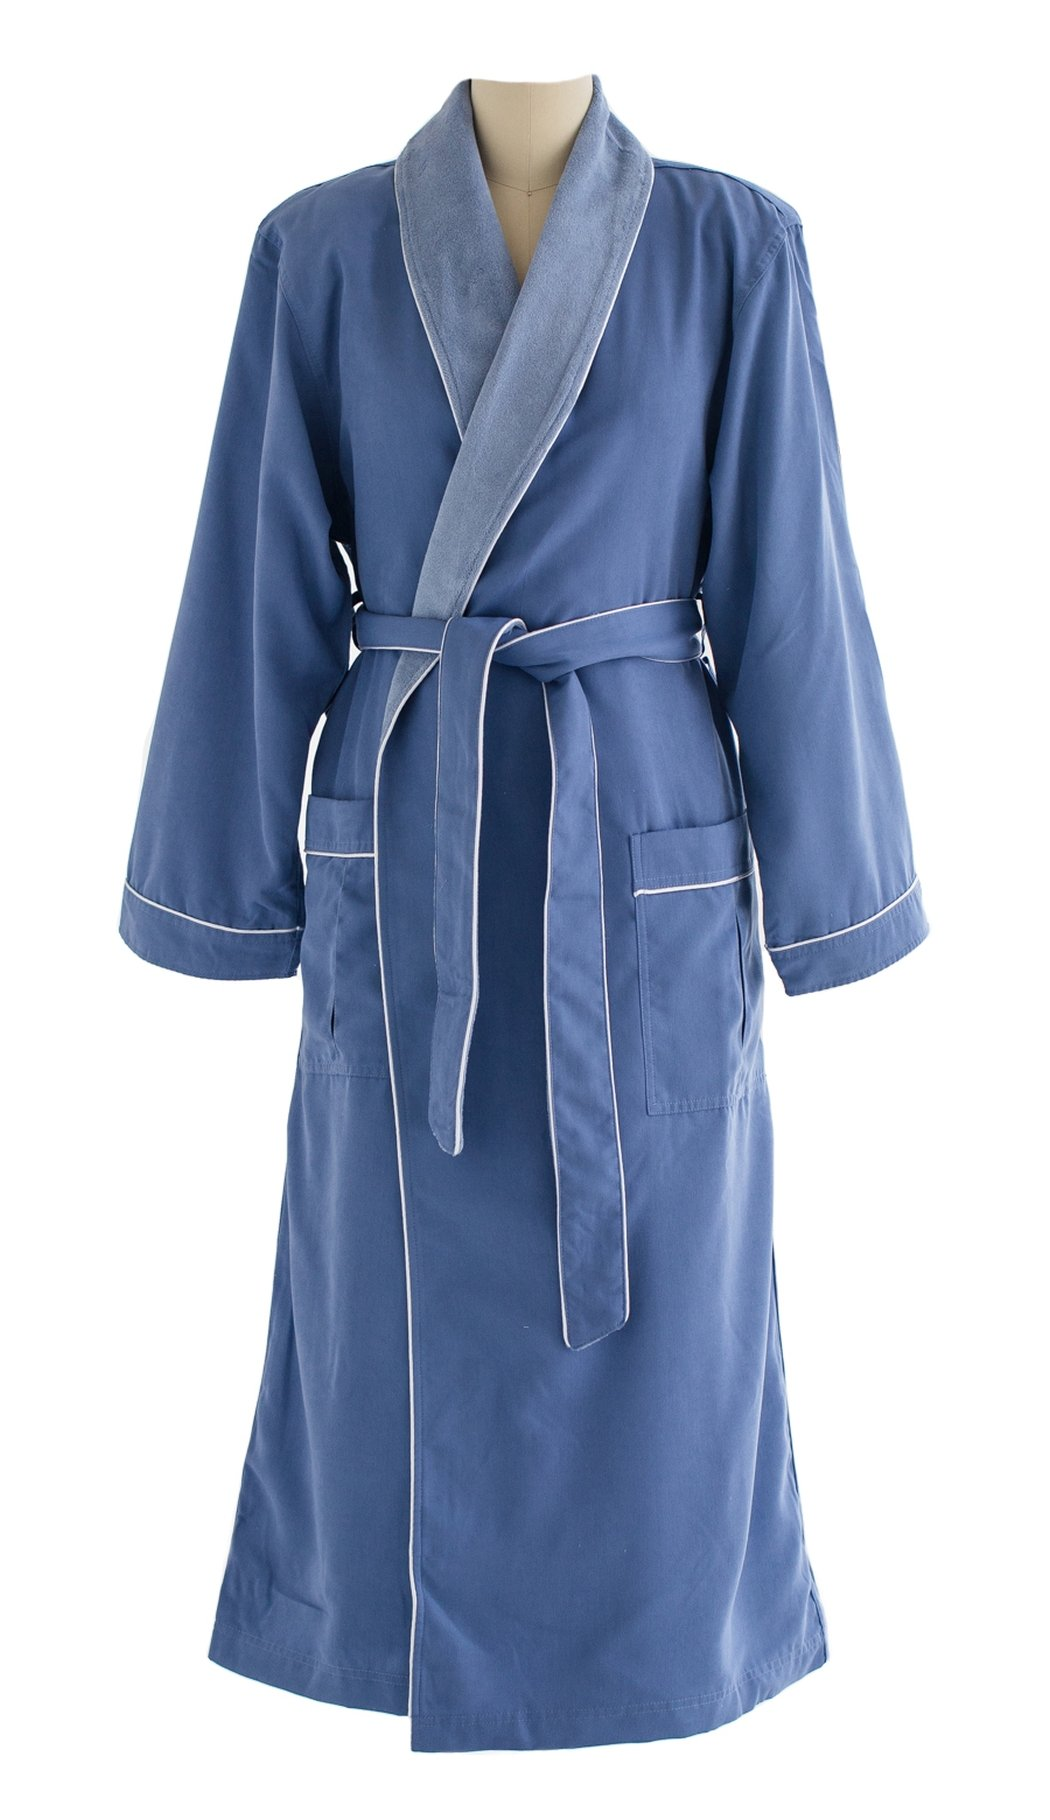 Ultimate Doeskin Microfiber Bathrobe Lined In Terry - Luxury Spa Bathrobe for Women and Men - Periwinkle/Periwinkle - Medium